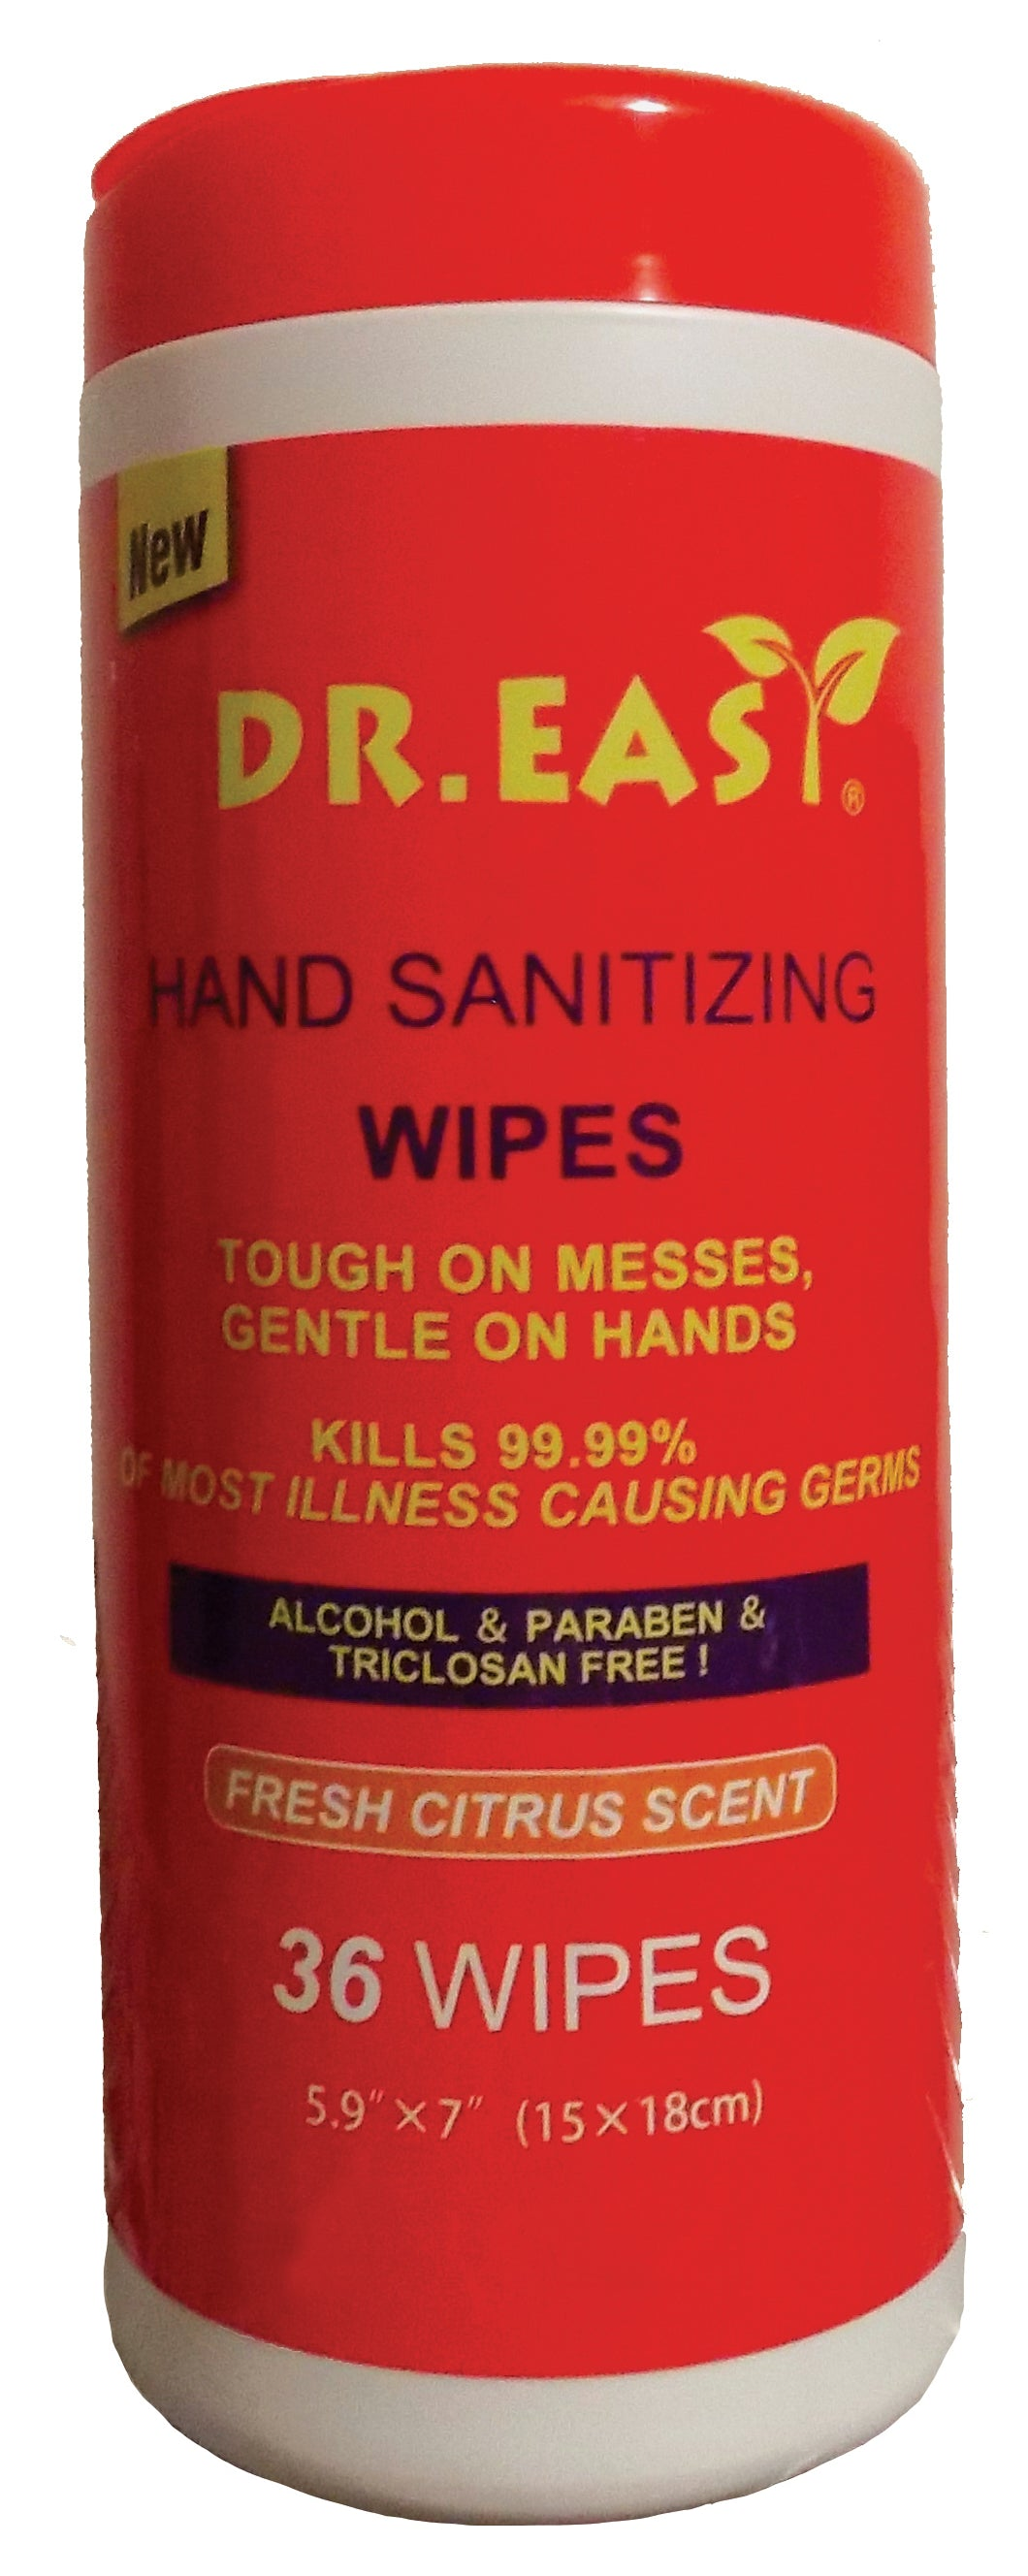 Dr. Easy Hand Sanitizing Wipes